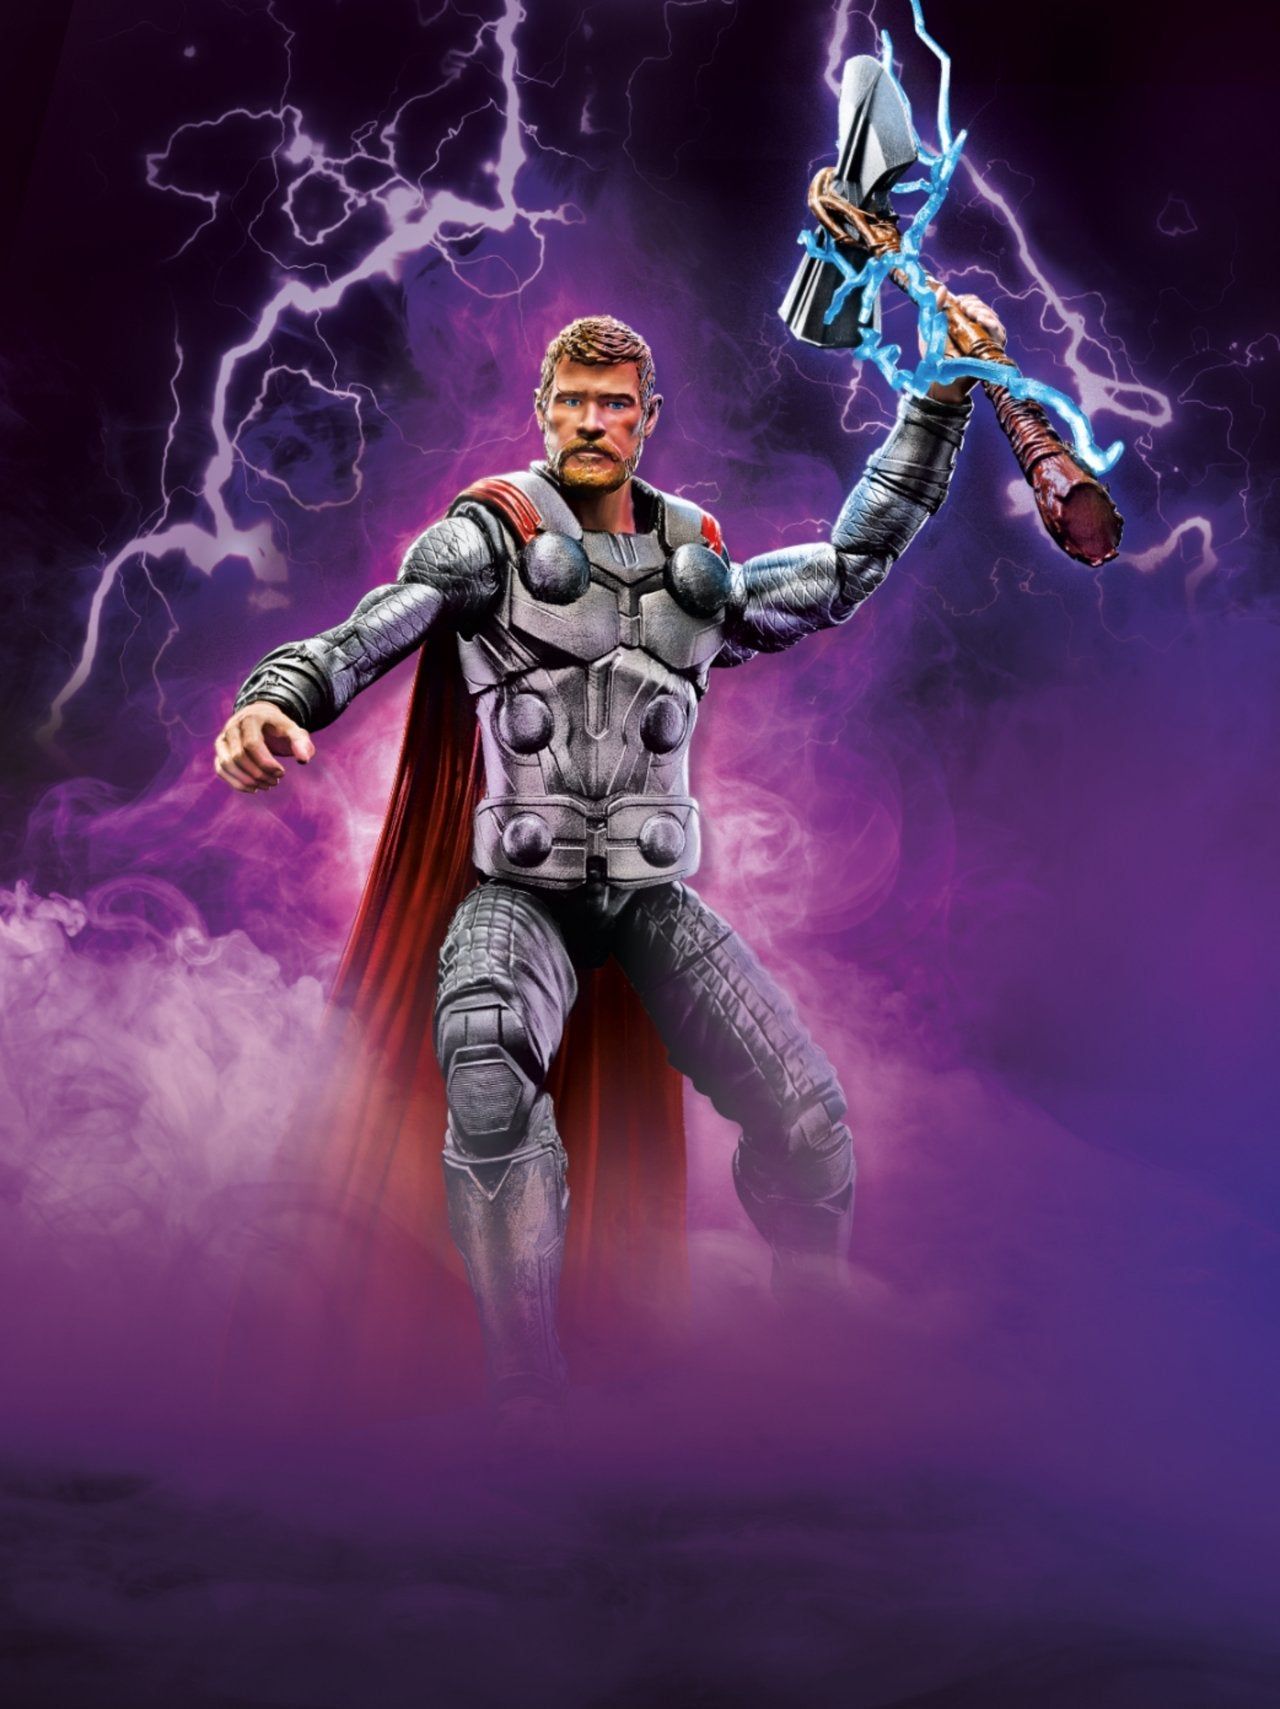 Avengers Infinity War First Two Waves Of Figures Revealed